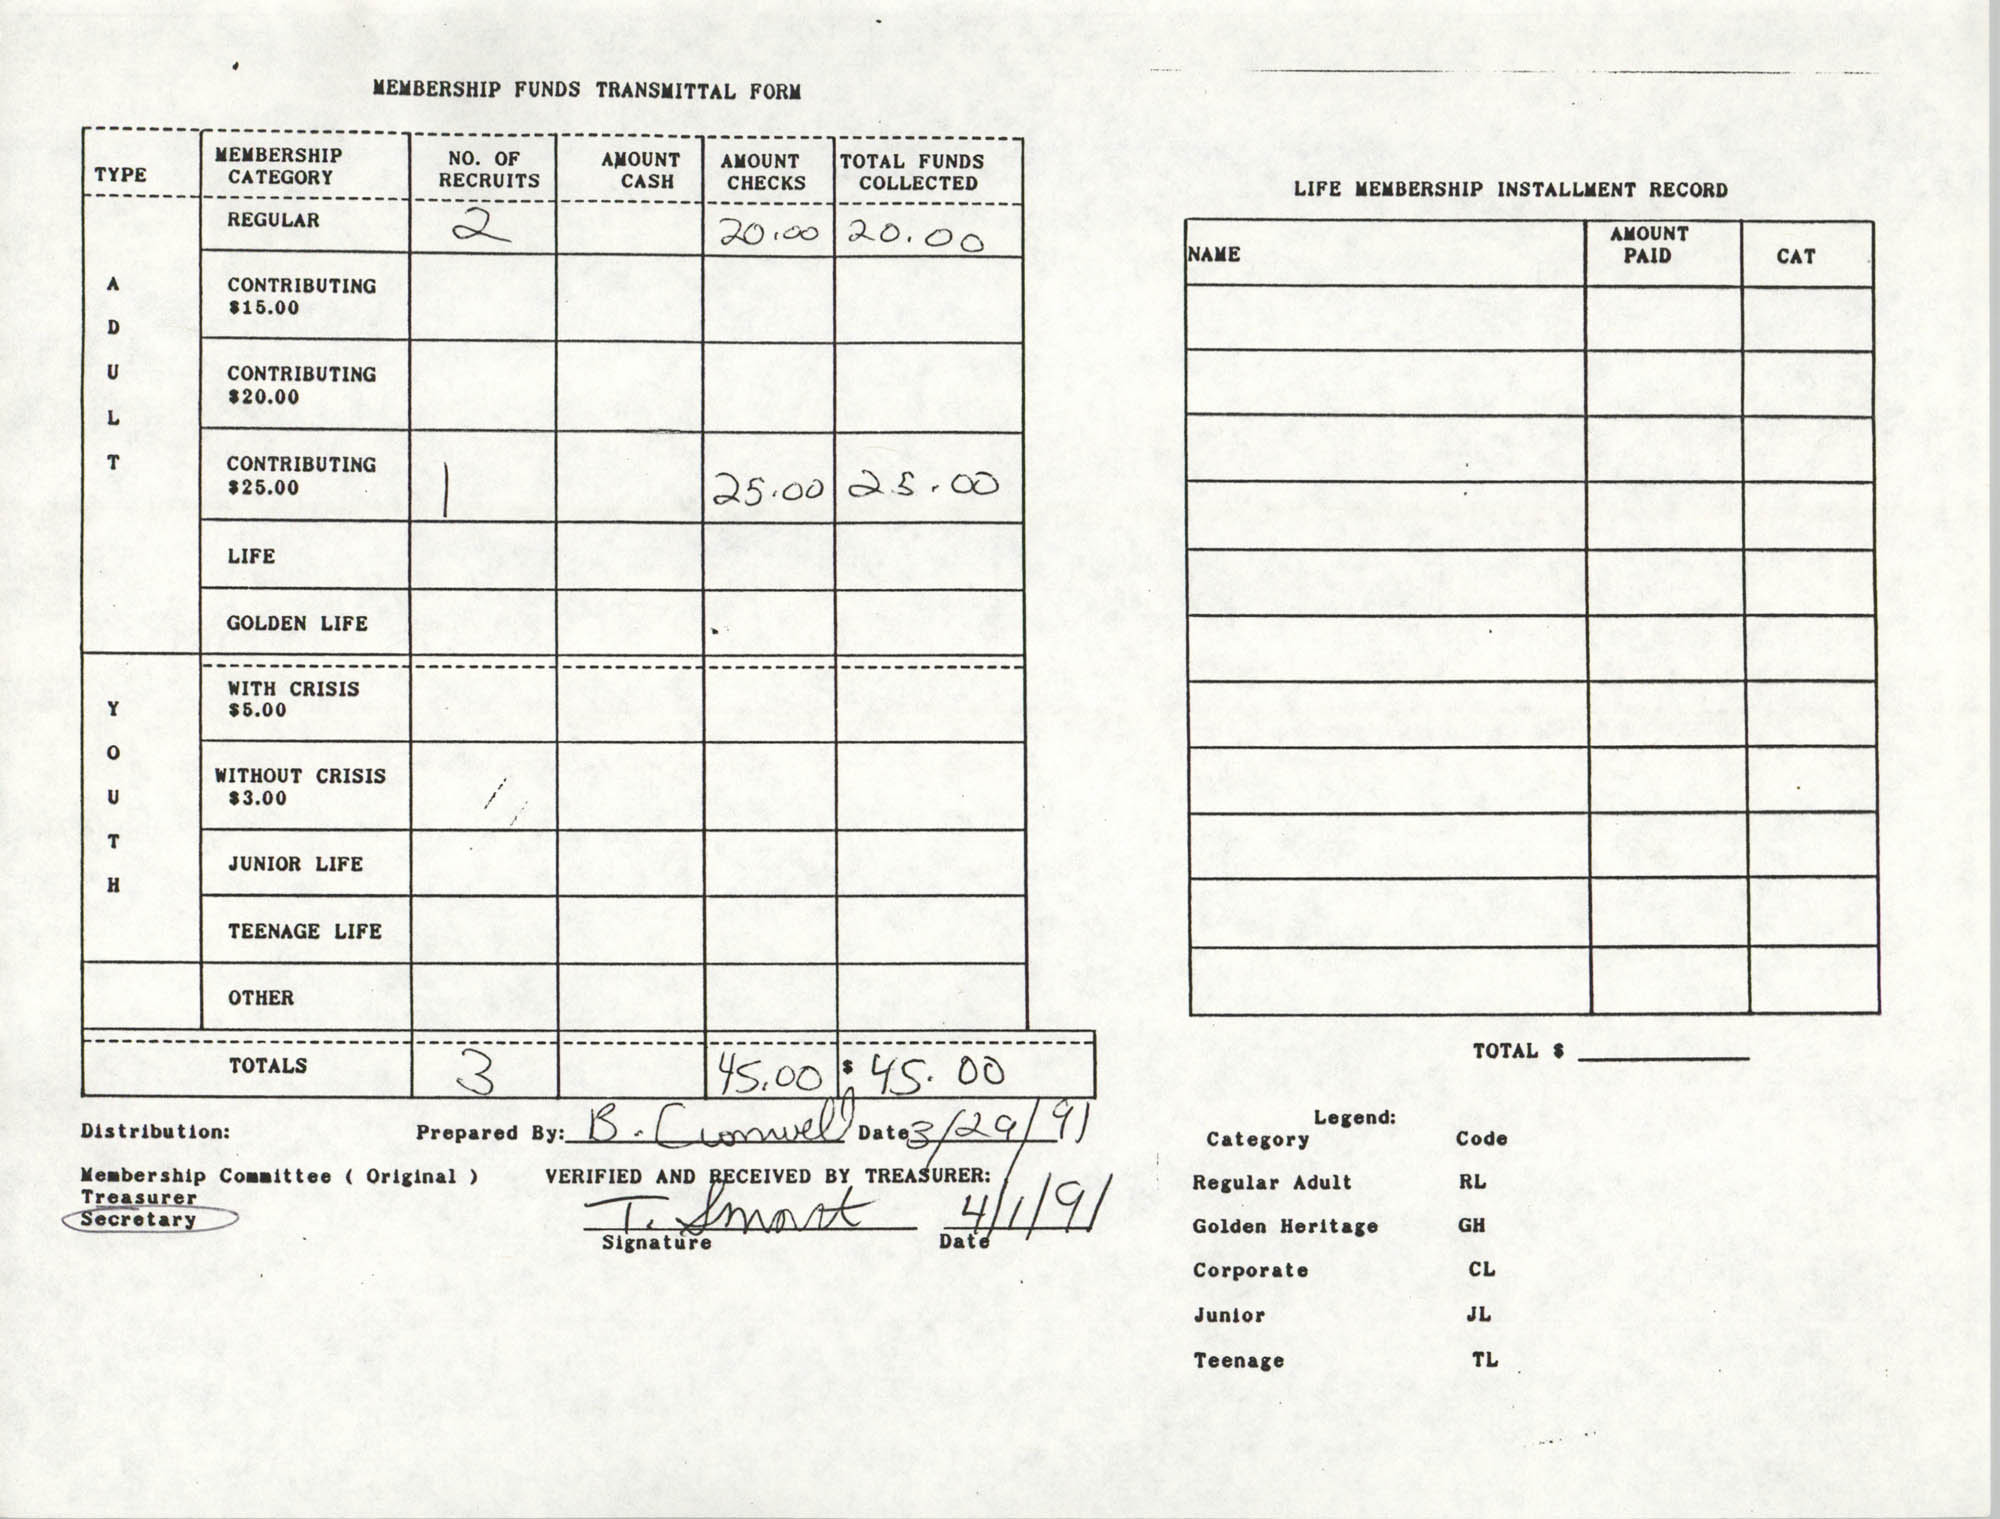 Charleston Branch of the NAACP Funds Transmittal Forms, March 1991, Page 14